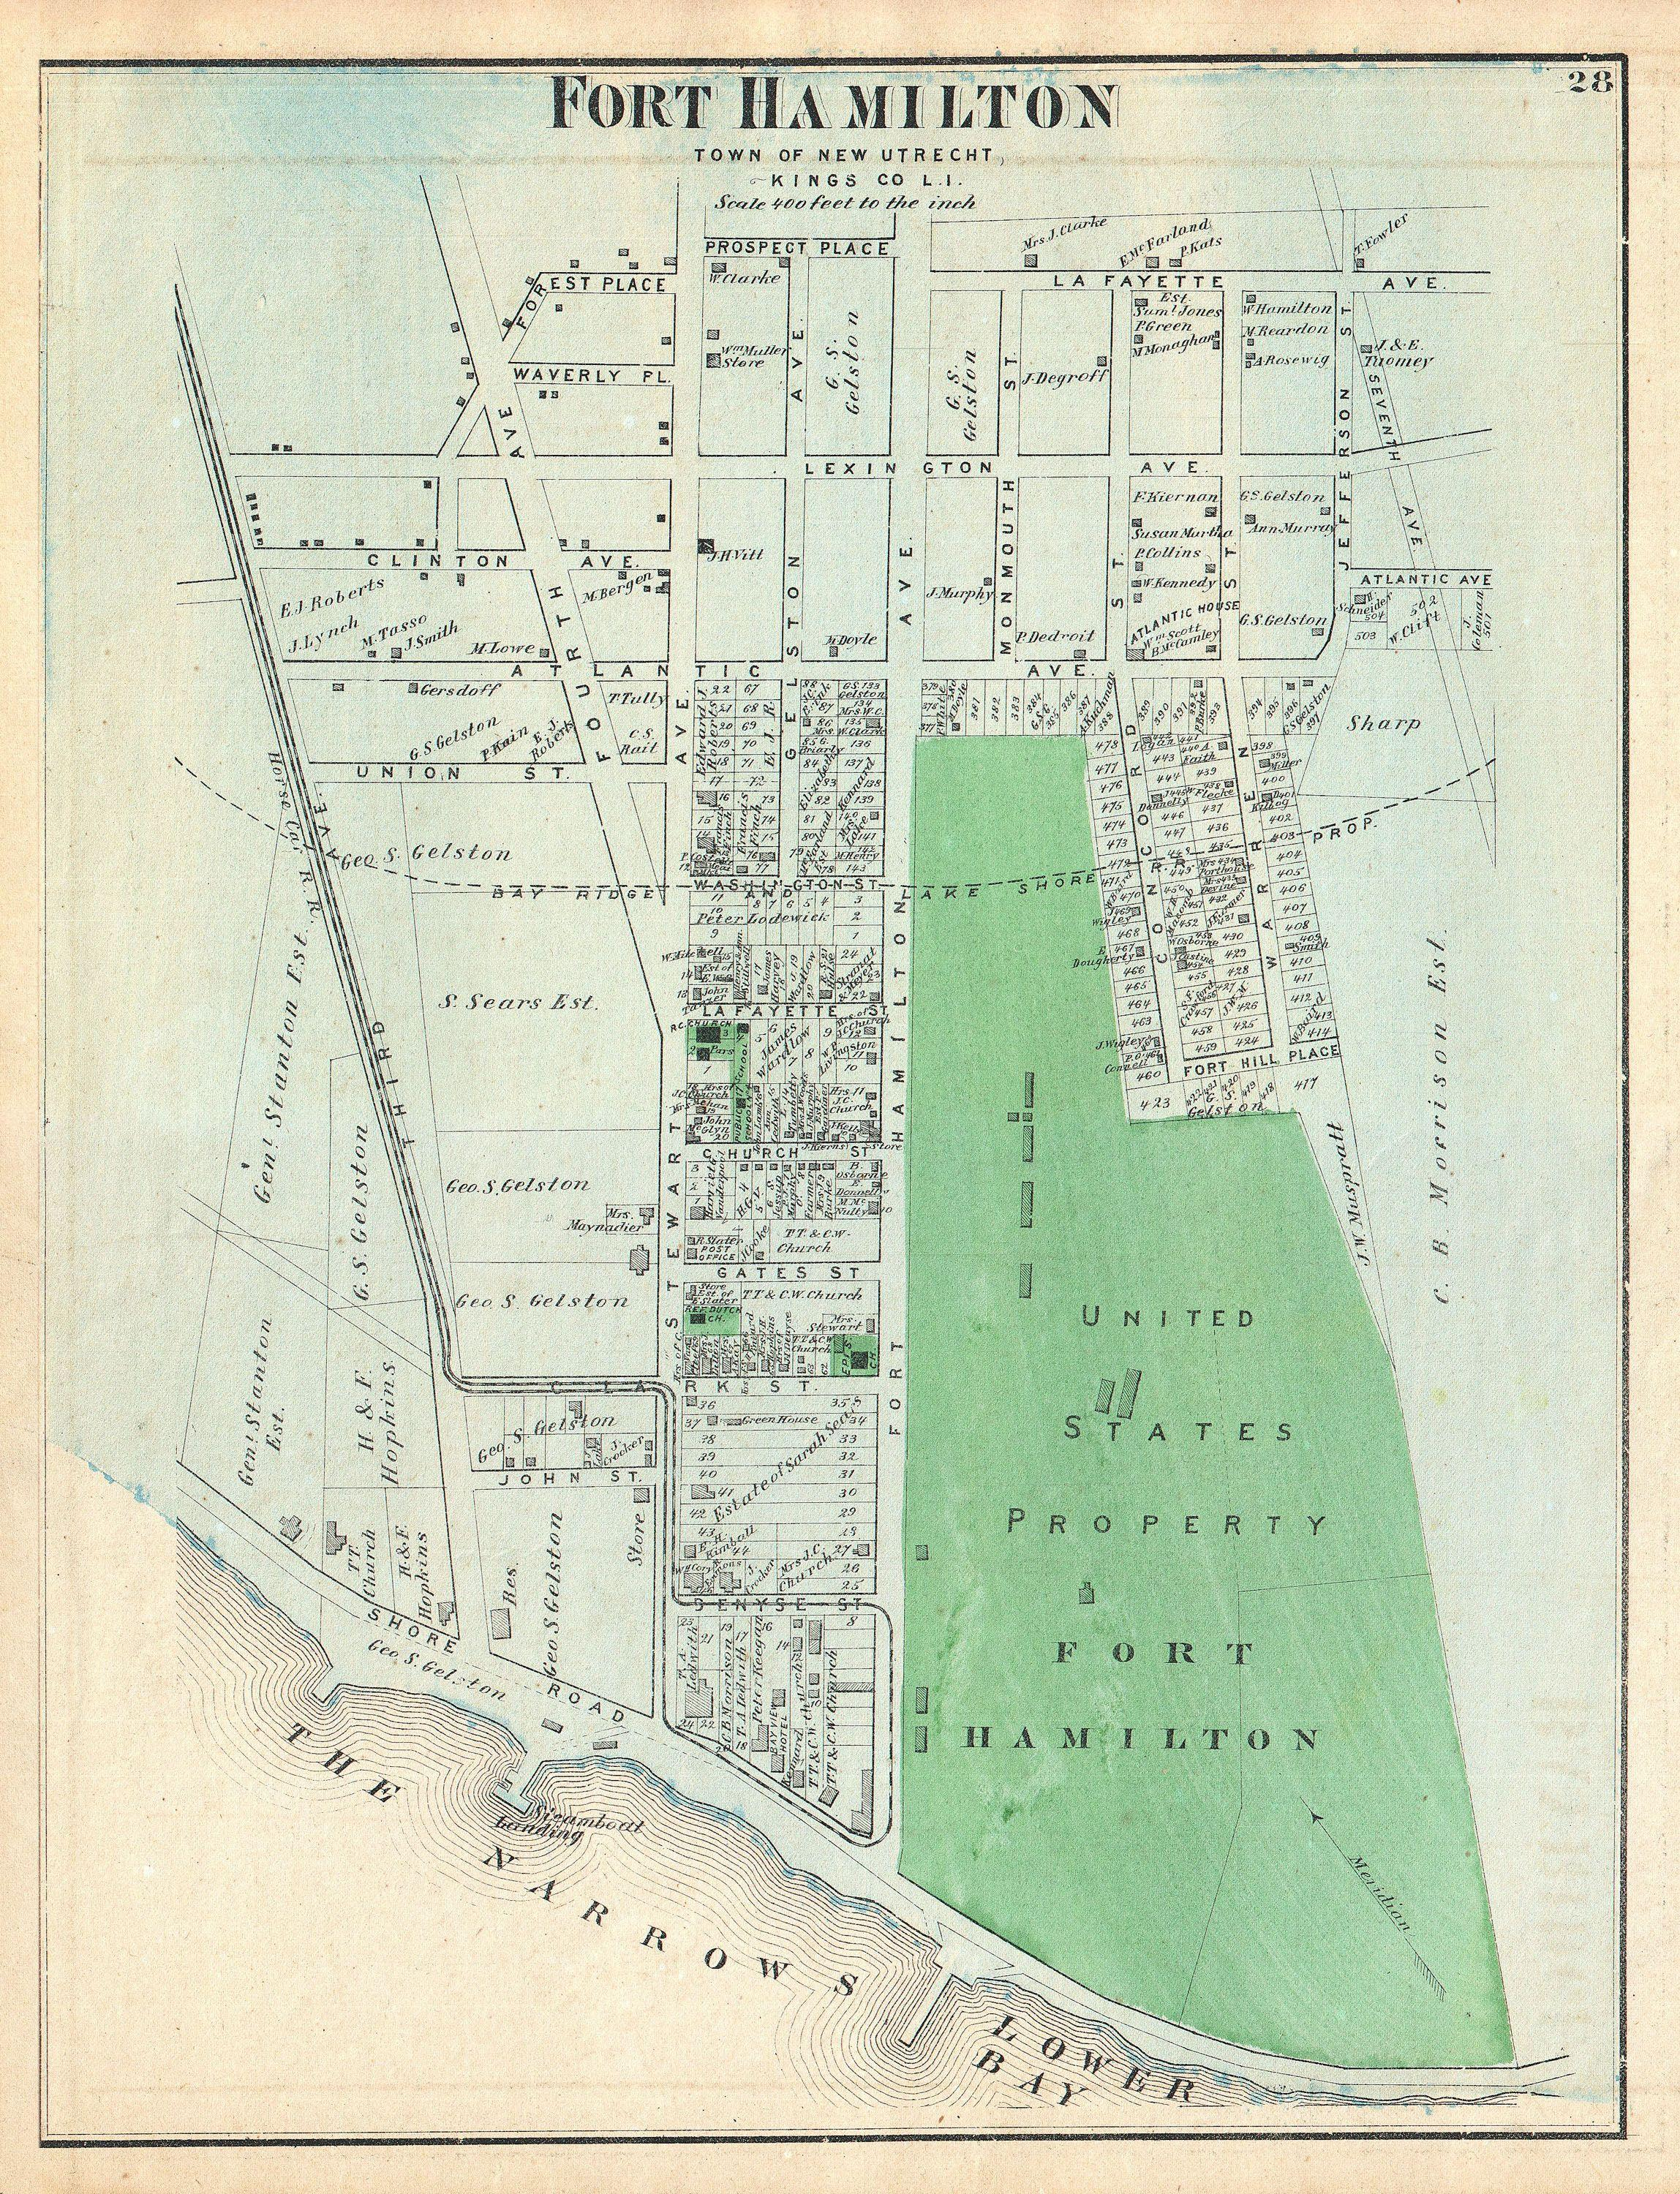 long island city ny map with File 1873 Beers Map Of Fort Hamilton  Brooklyn  New York City   Geographicus   Forthamilton Beers 1873 on File 1873 Beers Map of Fort Hamilton  Brooklyn  New York City   Geographicus   FortHamilton Beers 1873 also Manhasset further Canarsie Brooklyn New York further 3754942340 moreover Essential North Fork Wine Guide Map.